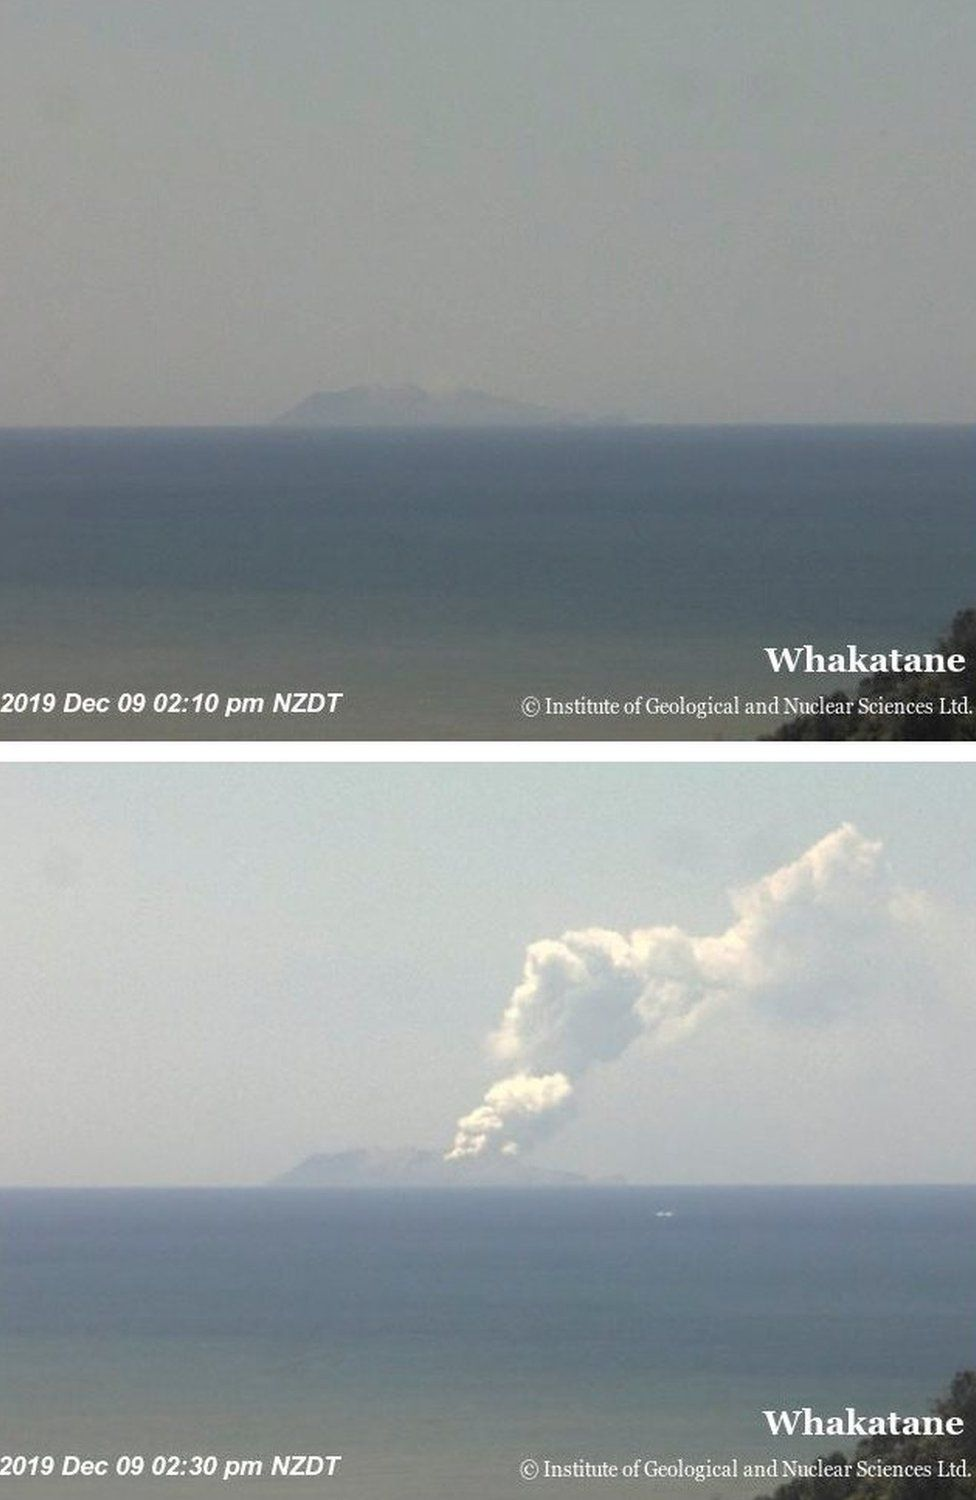 Combination photo shows Whakaari, also known as White Island, volcano shortly before and after eruption